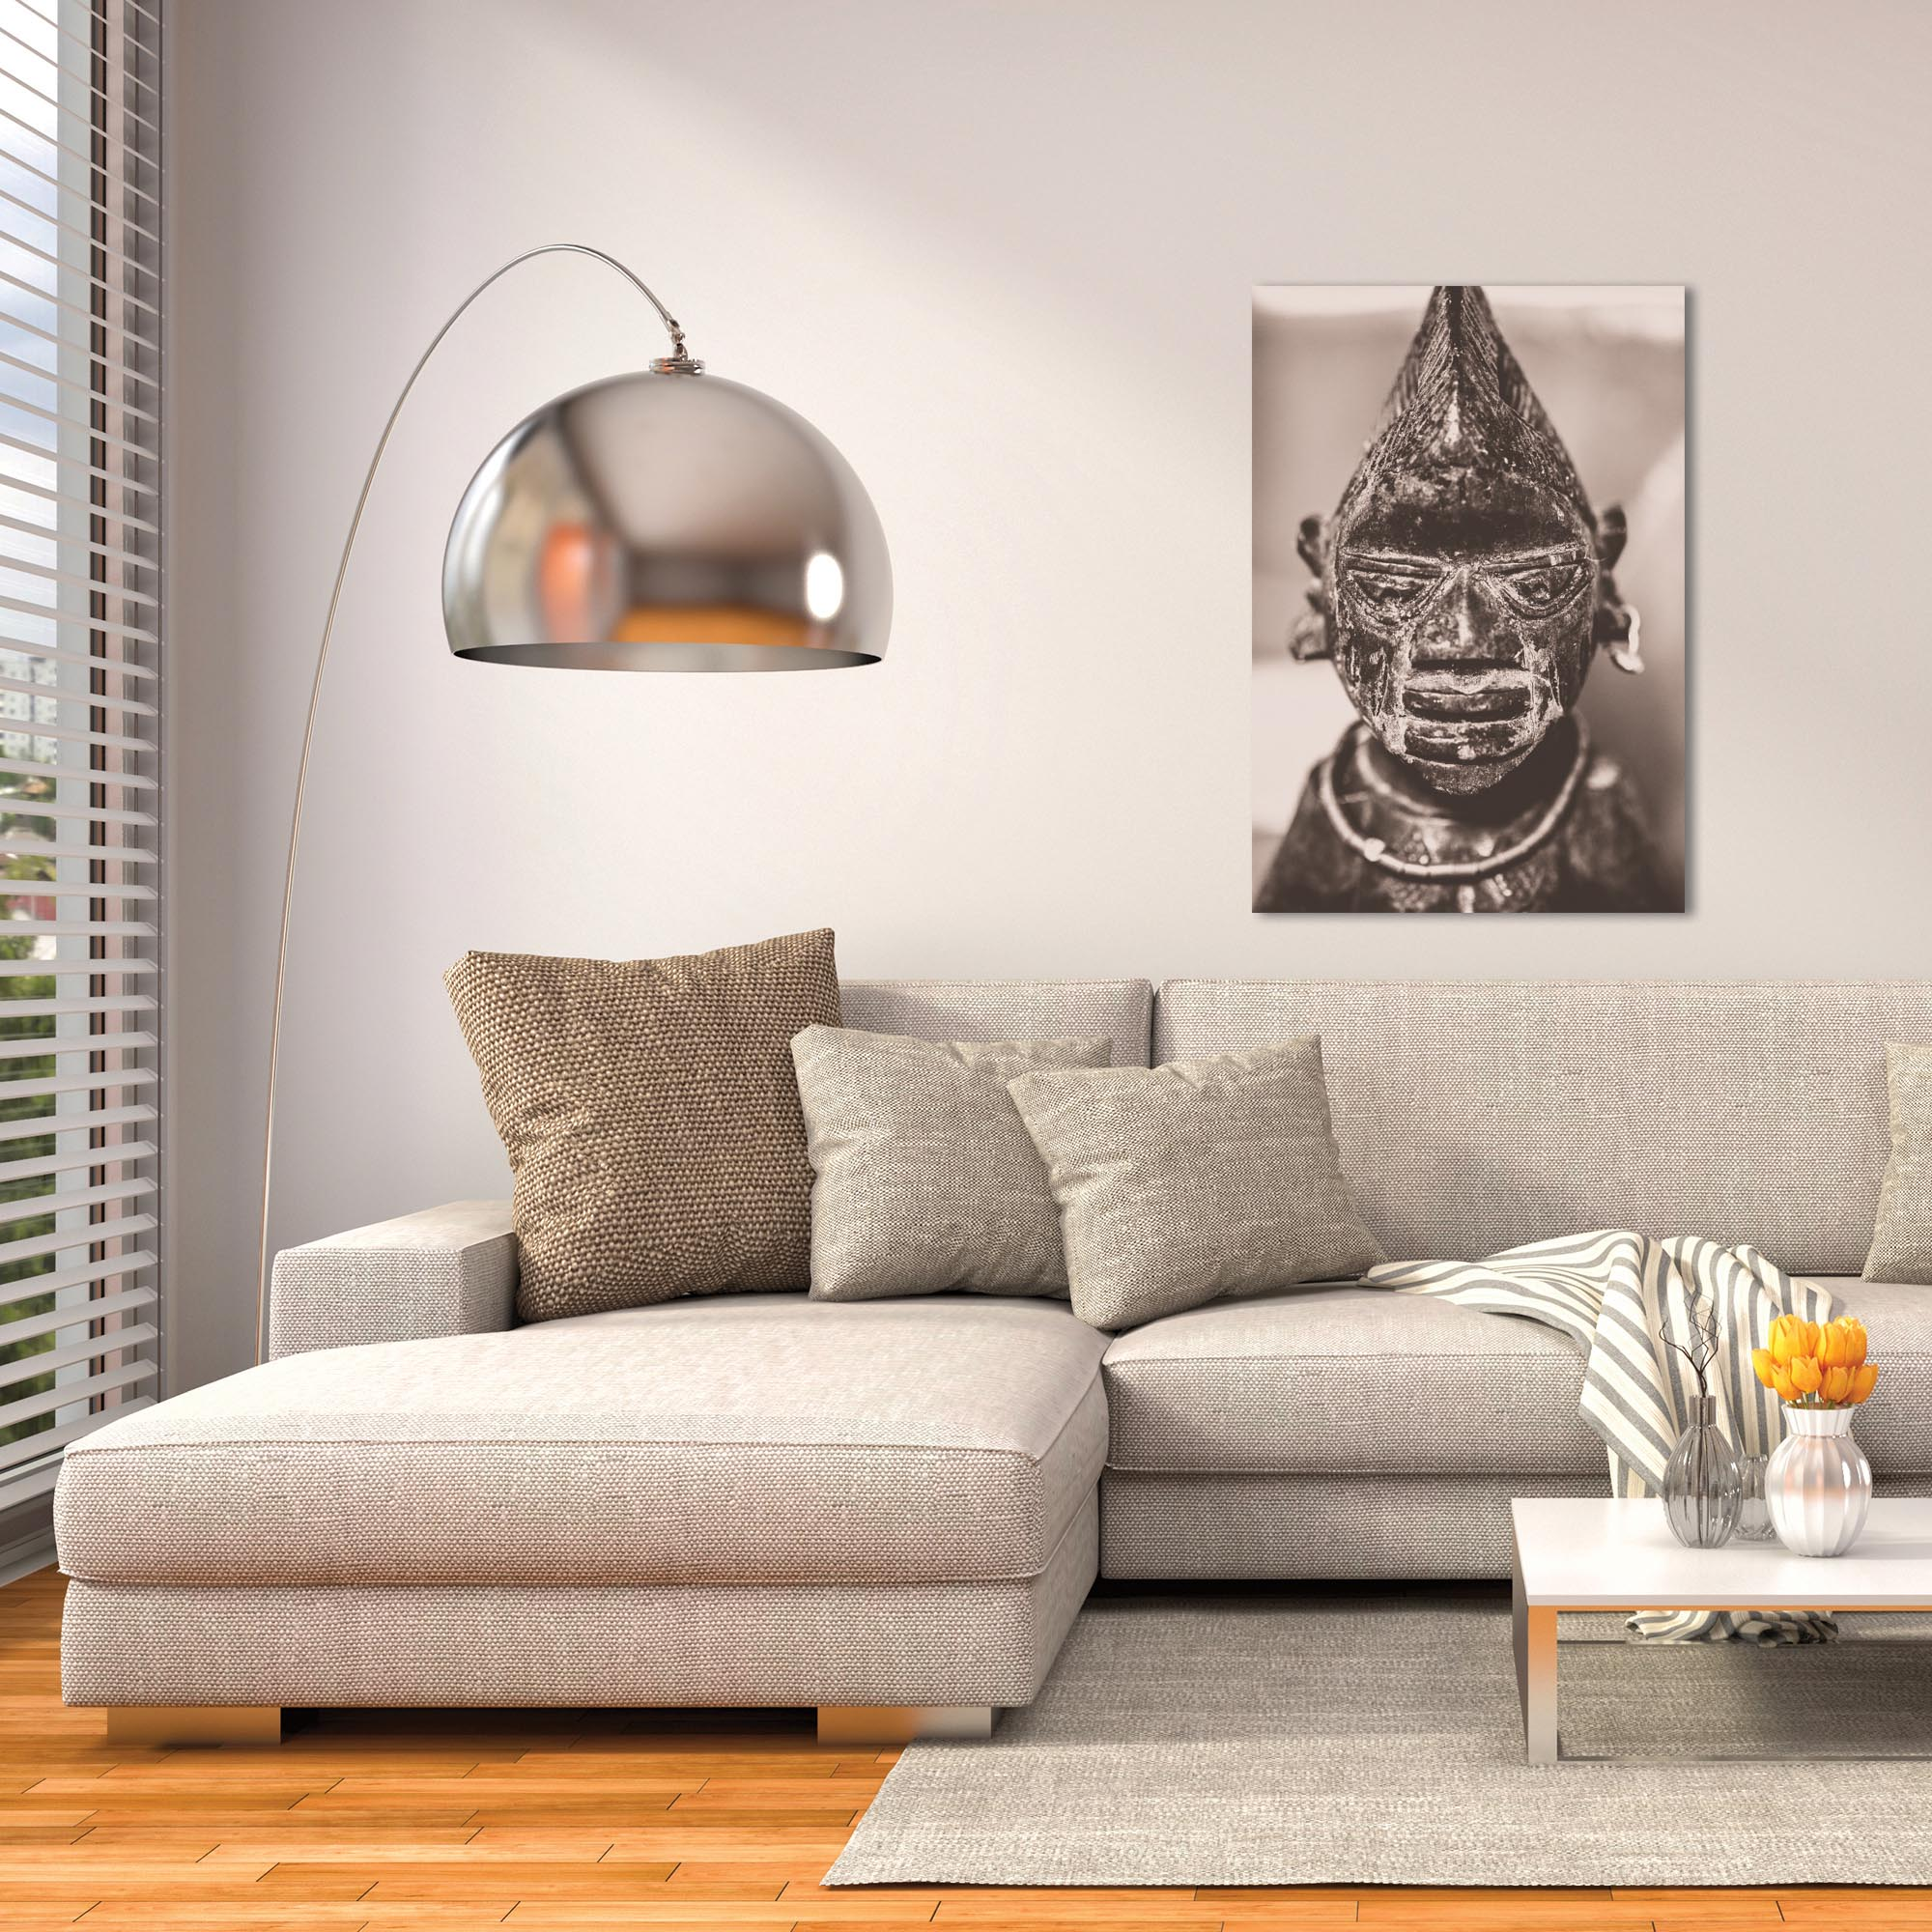 Eclectic Wall Art 'Voodoo Statue' - Religion Decor on Metal or Plexiglass - Lifestyle View